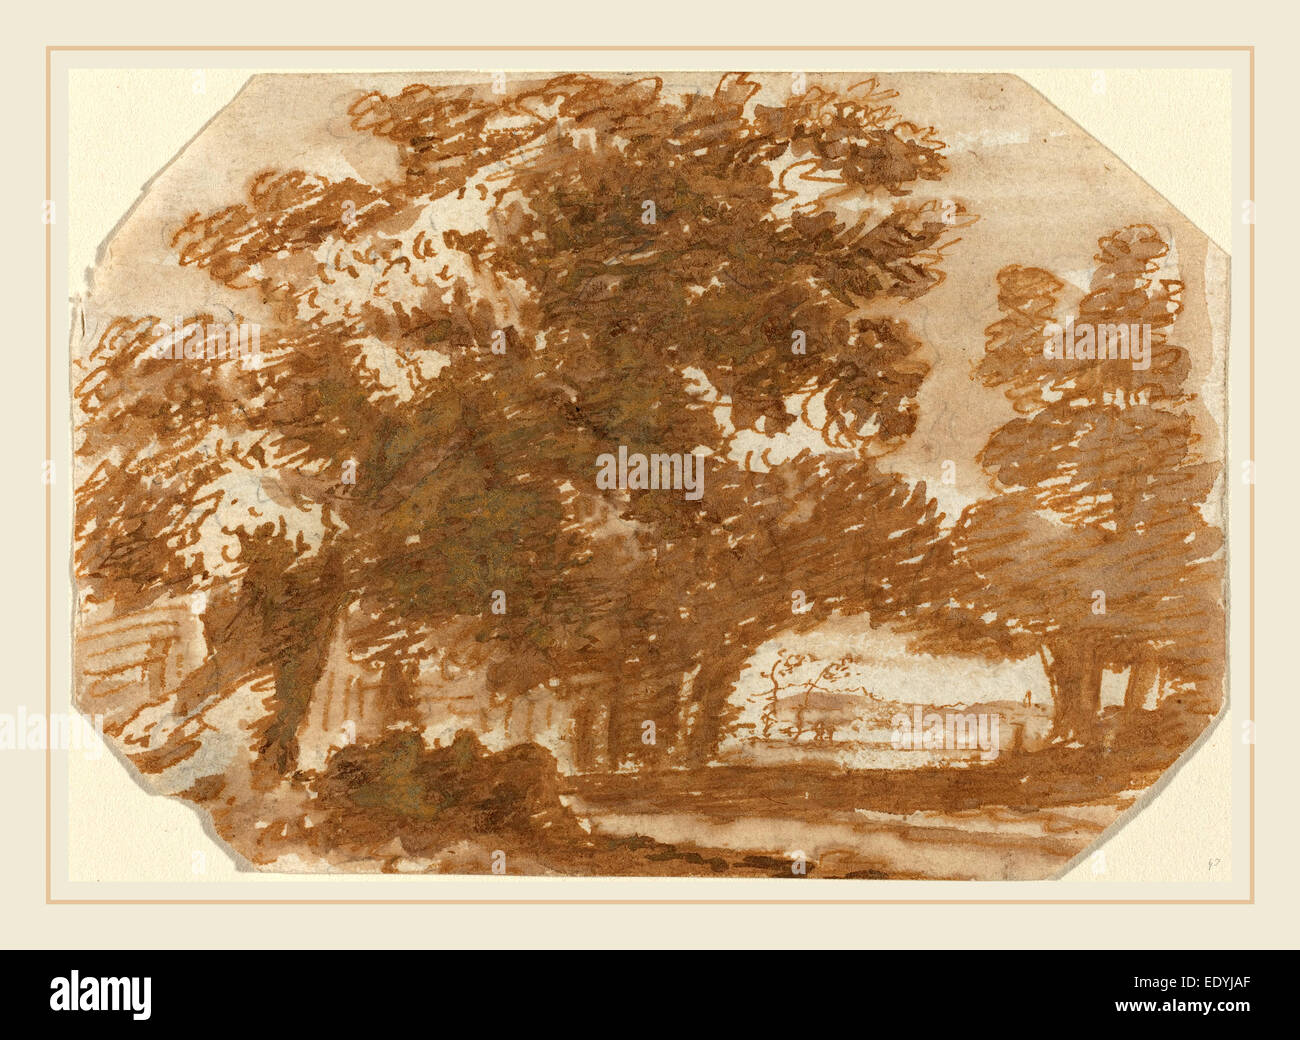 Claude Lorrain, French (1604-1605-1682), Grove of Trees, c. 1640, pen and brown ink with gray wash on laid paper - Stock Image